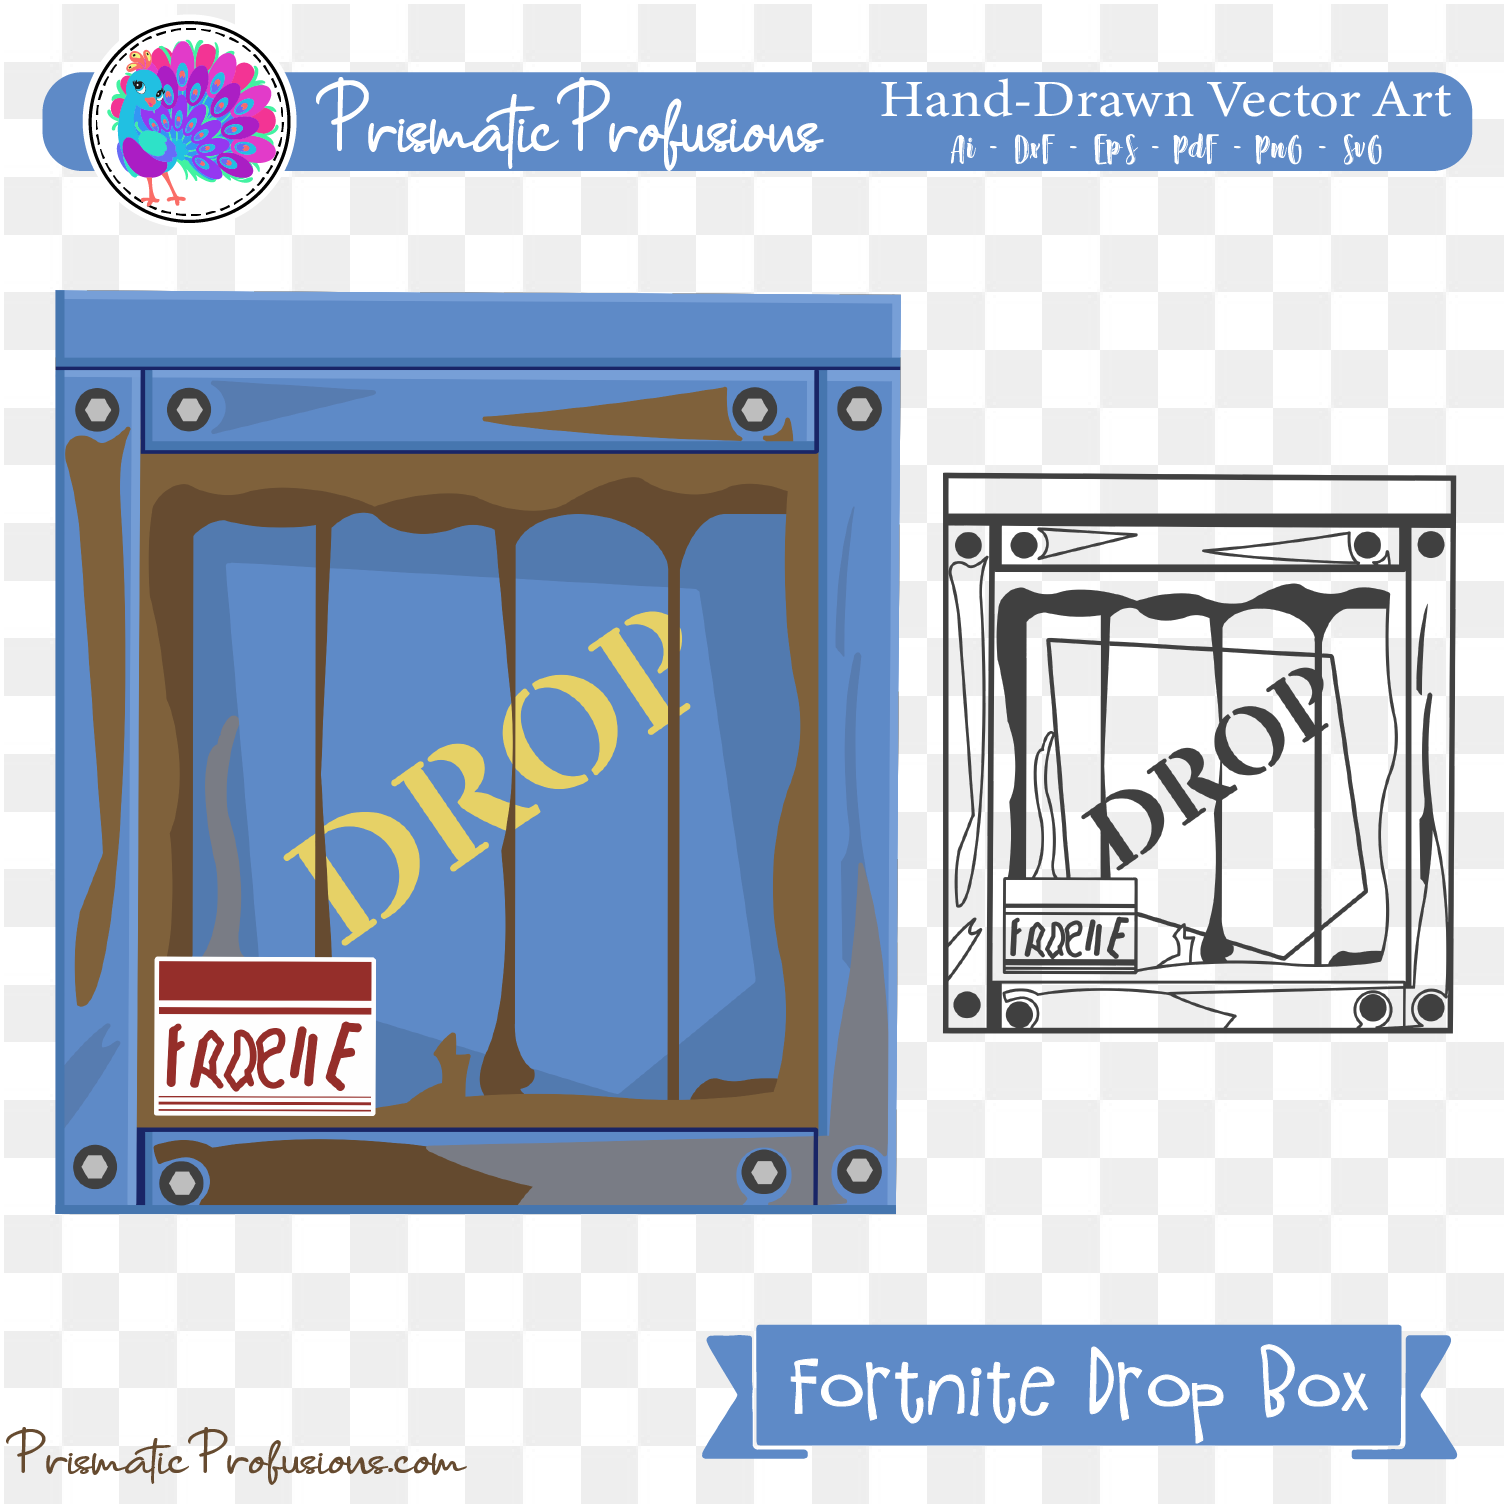 Fortnite supply drop clipart picture transparent download Fortnite Dropbox, Fortnite Dropbox SVG, Fortnite Dropbox Clipart picture transparent download